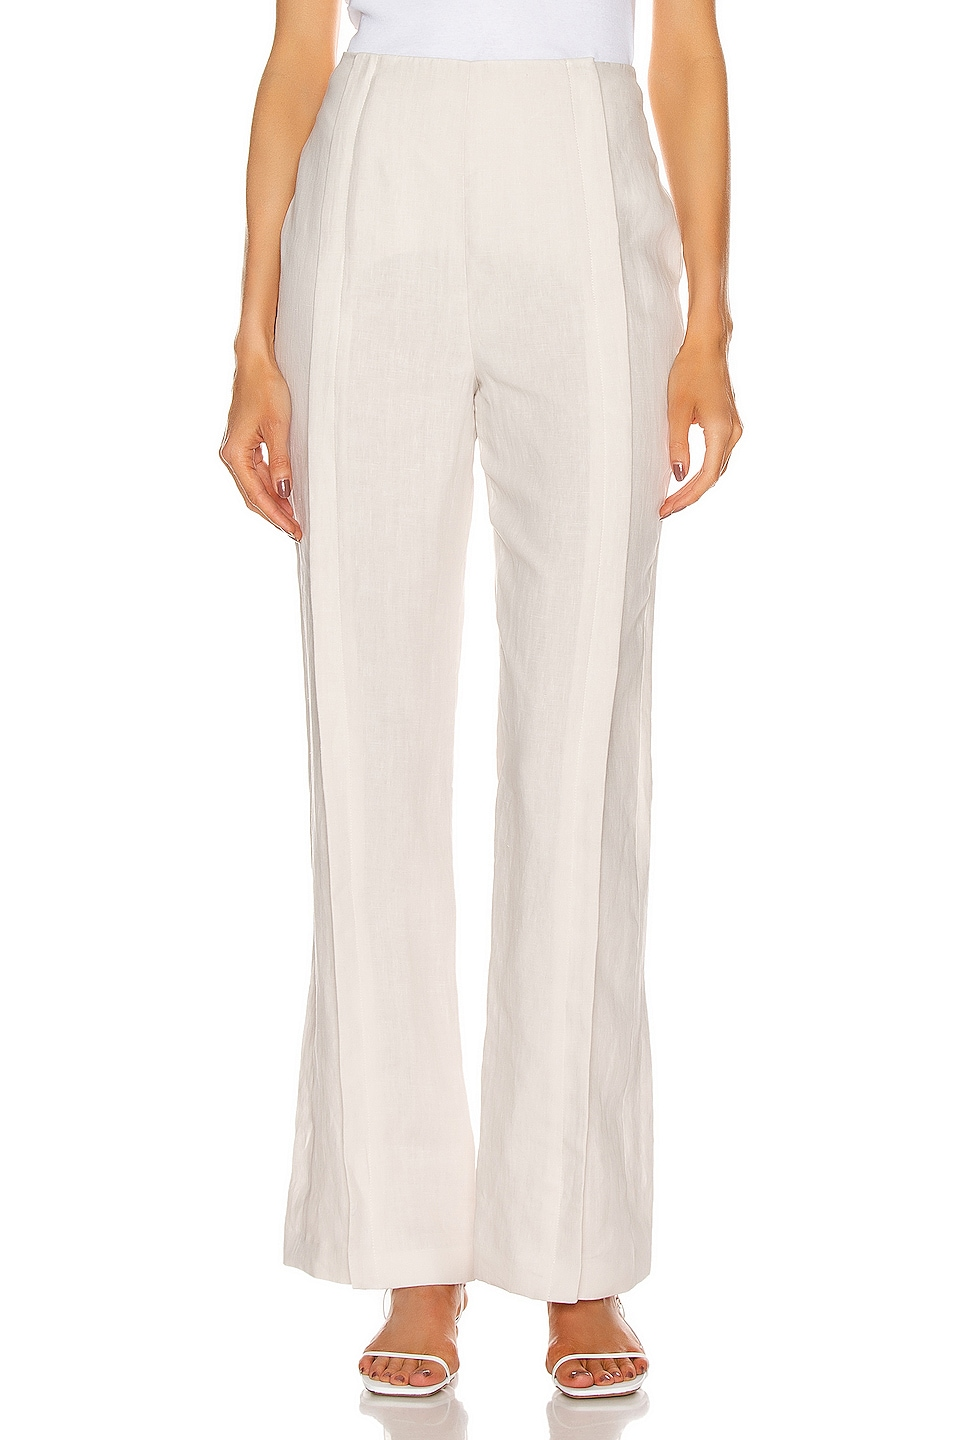 Image 1 of Acne Studios Linen Trouser Pant in White Melange